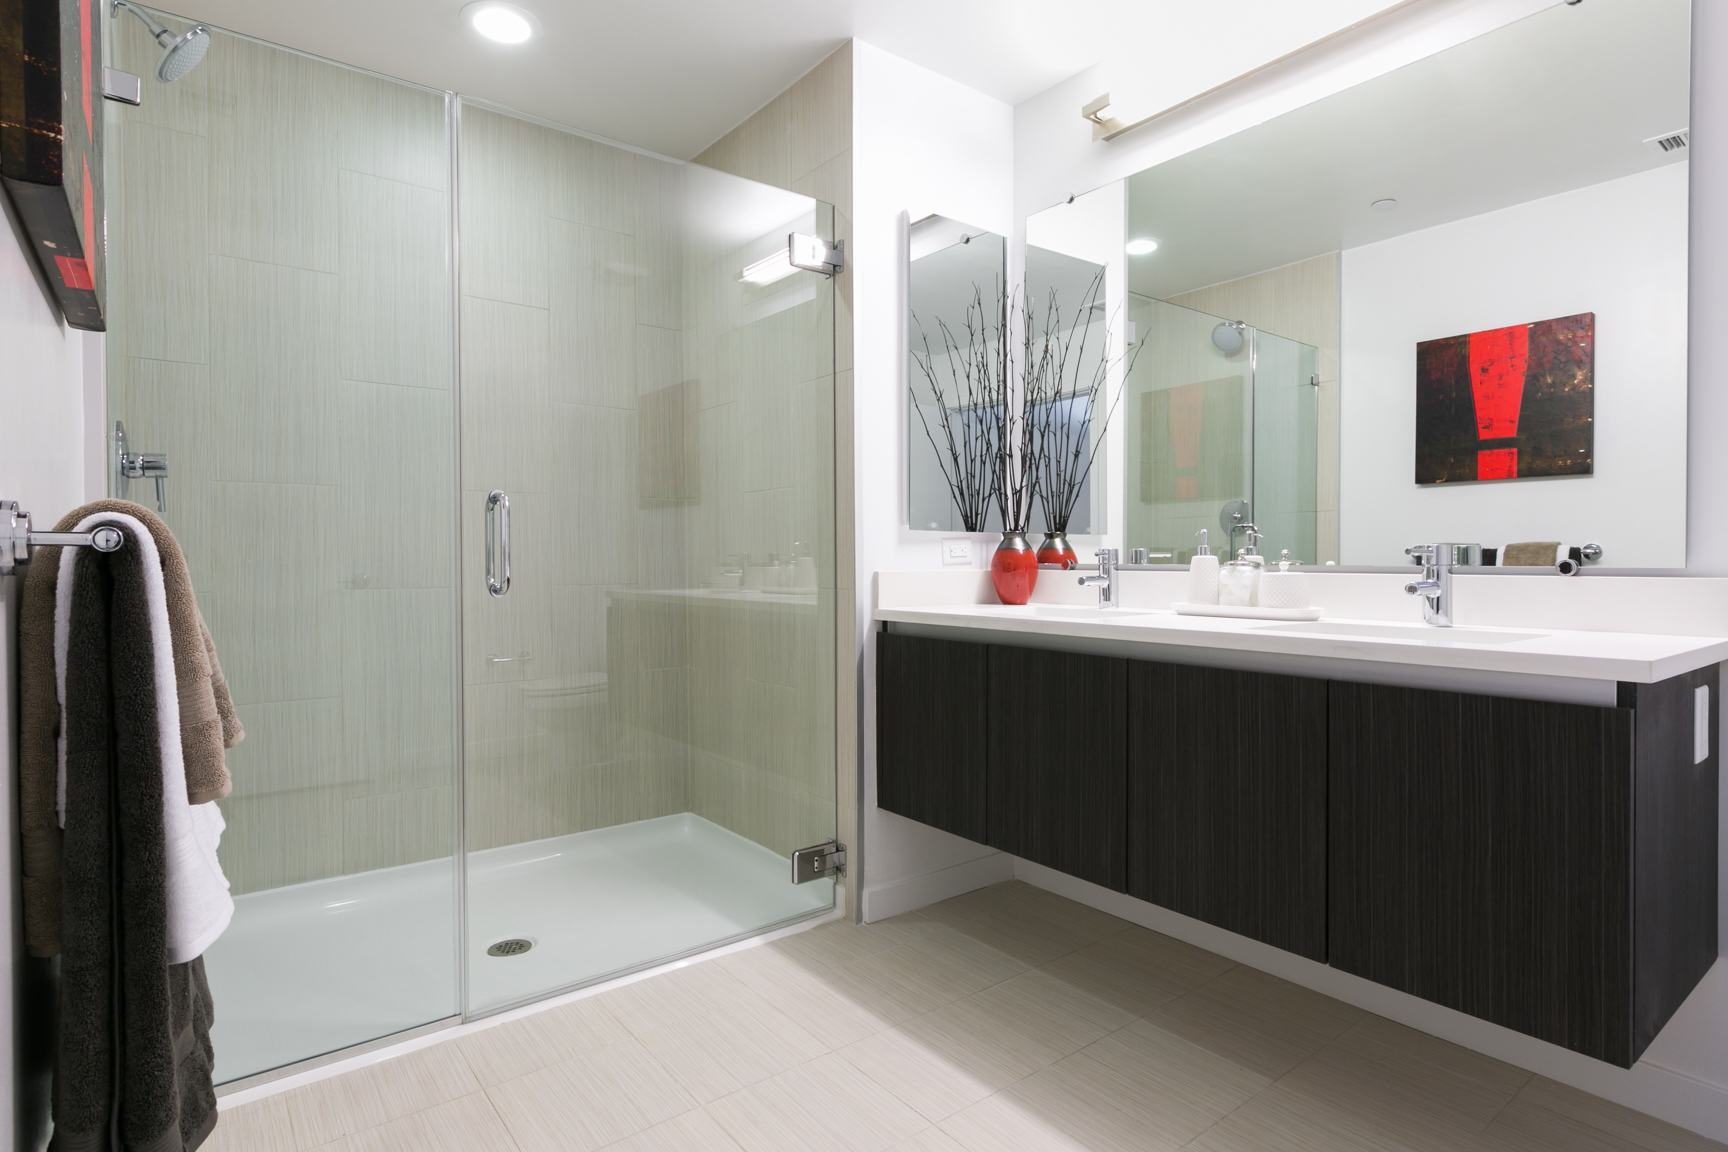 Photos of revere campbell in campbell ca for Bathrooms r us clayton